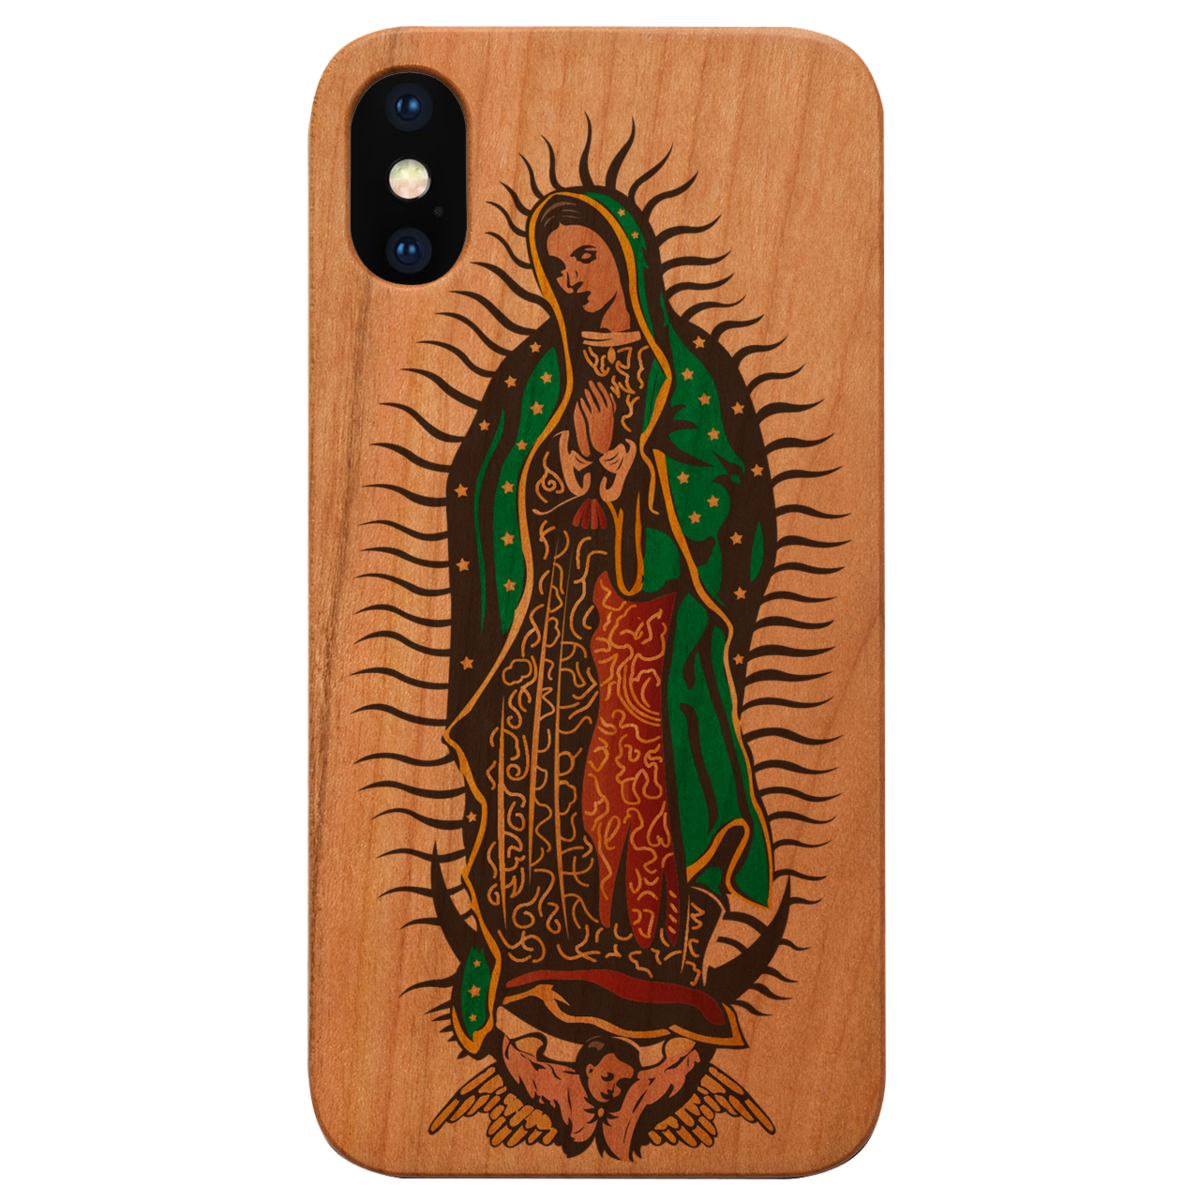 GUADALUPE - UV COLOR PRINTED, Limited Edition Wooden Smartphone Case (All Iphones & Samsung) - High quality, Beautifully designed.